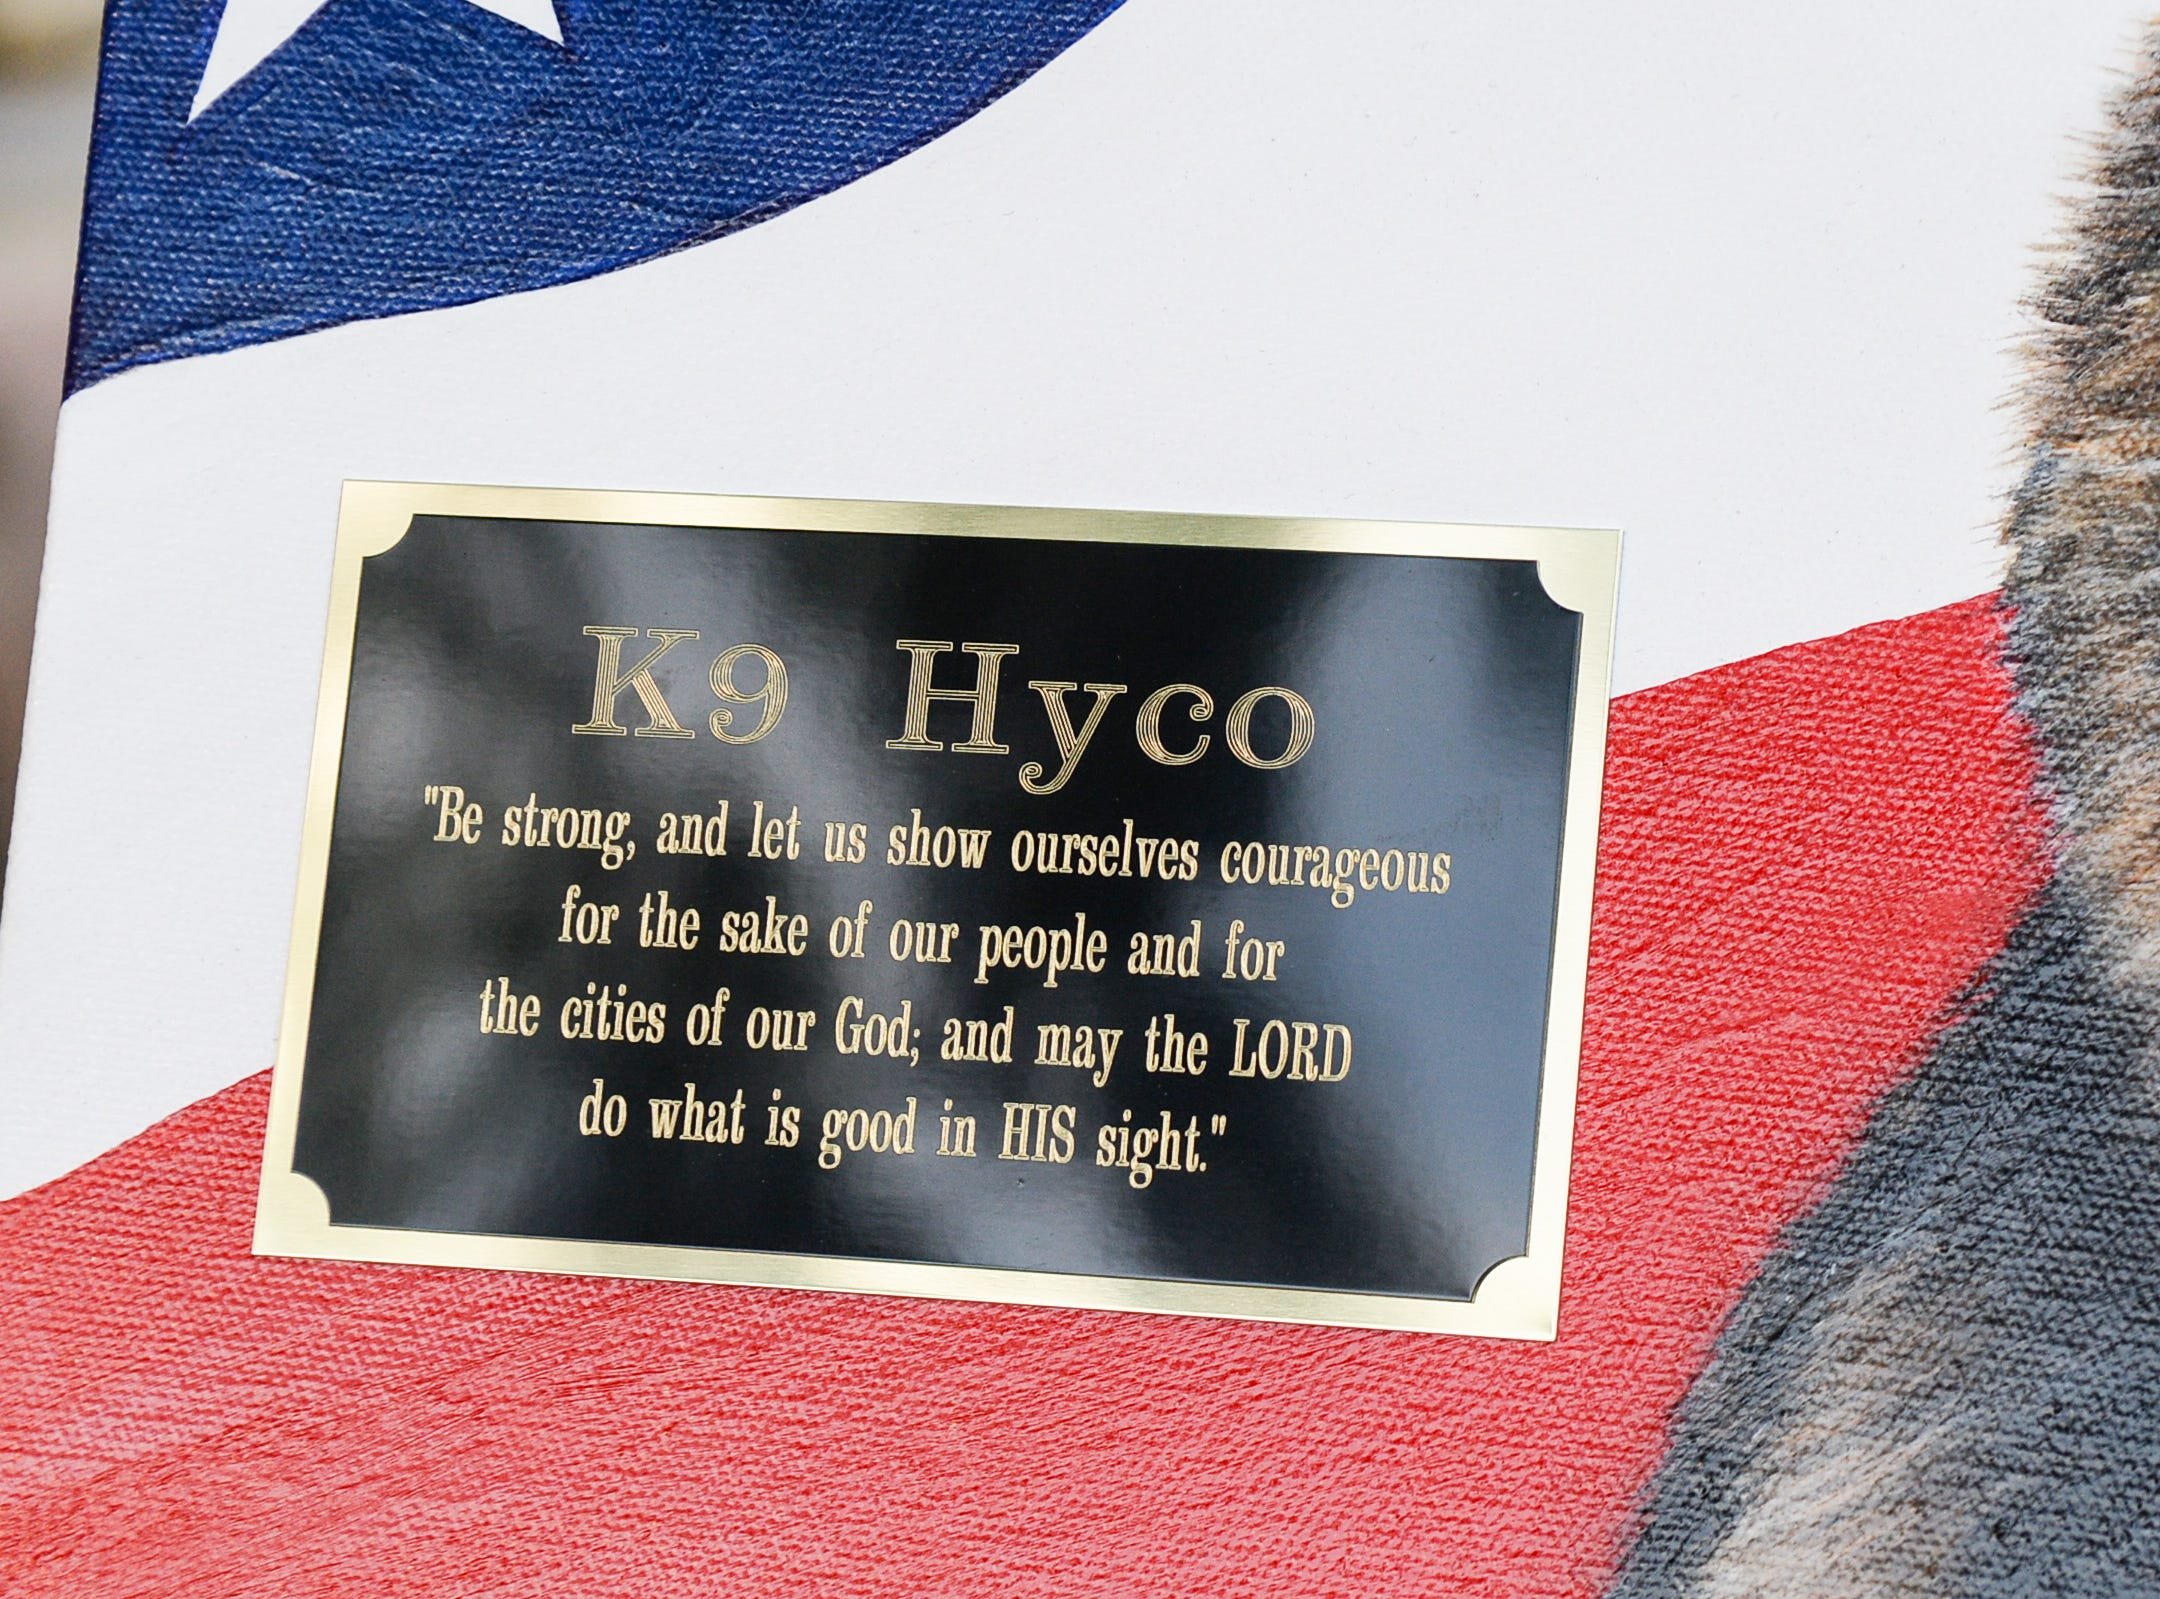 Artist Loreena Pantaleone, of Pennsylvania, presented Brandon Surratt a painting of Hyco, during the 2019 Peace Officer Memorial Service Wednesday May 15, 2019, in front of the Anderson County courthouse. People attended to help honor the lives of officers lost in the line of duty. Surratt, a former Anderson County Sheriff Deputy who lost his K-9 Hyco in the line of duty in 2015, spoke about serving as an officer.